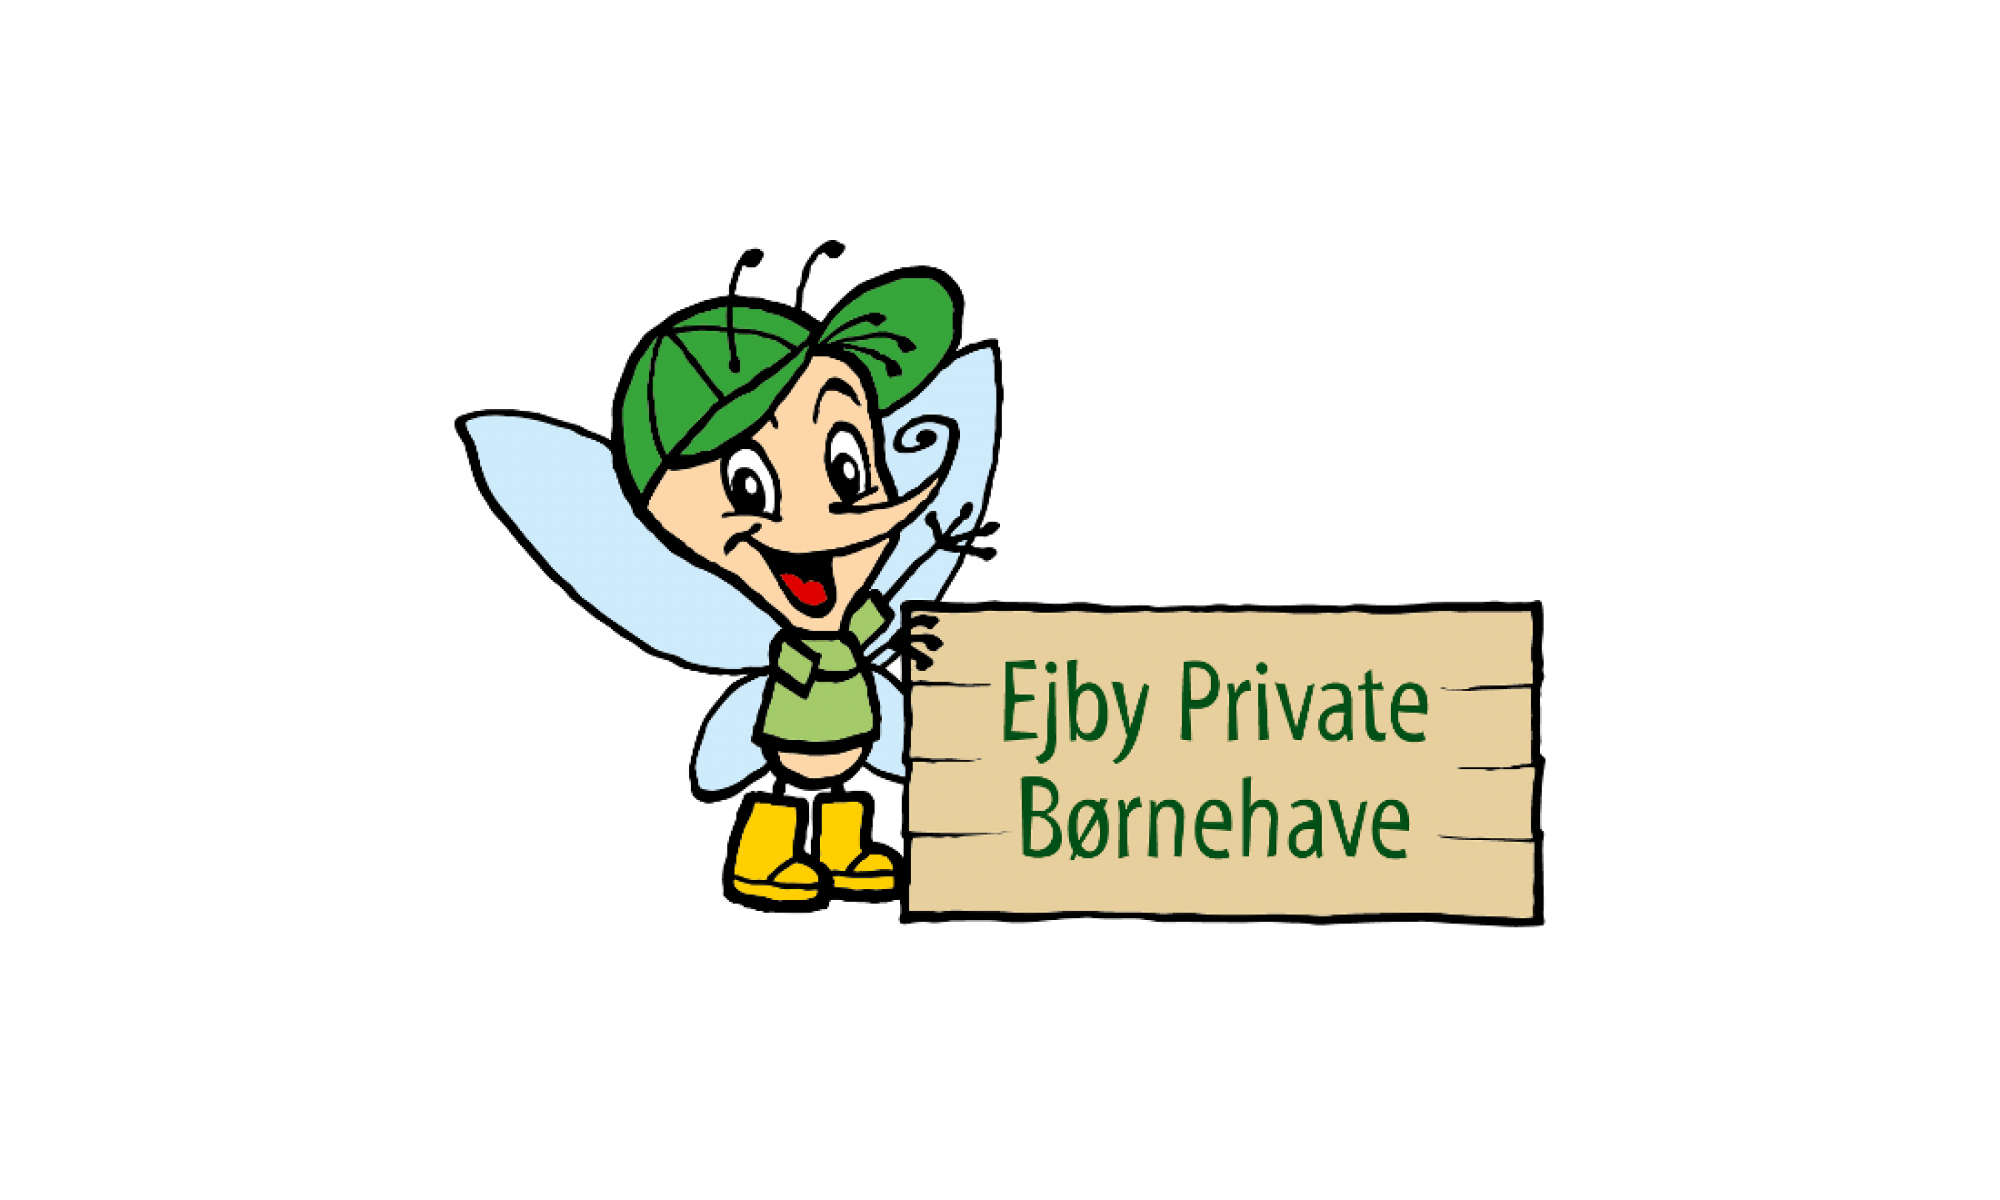 Ejby private børnehave